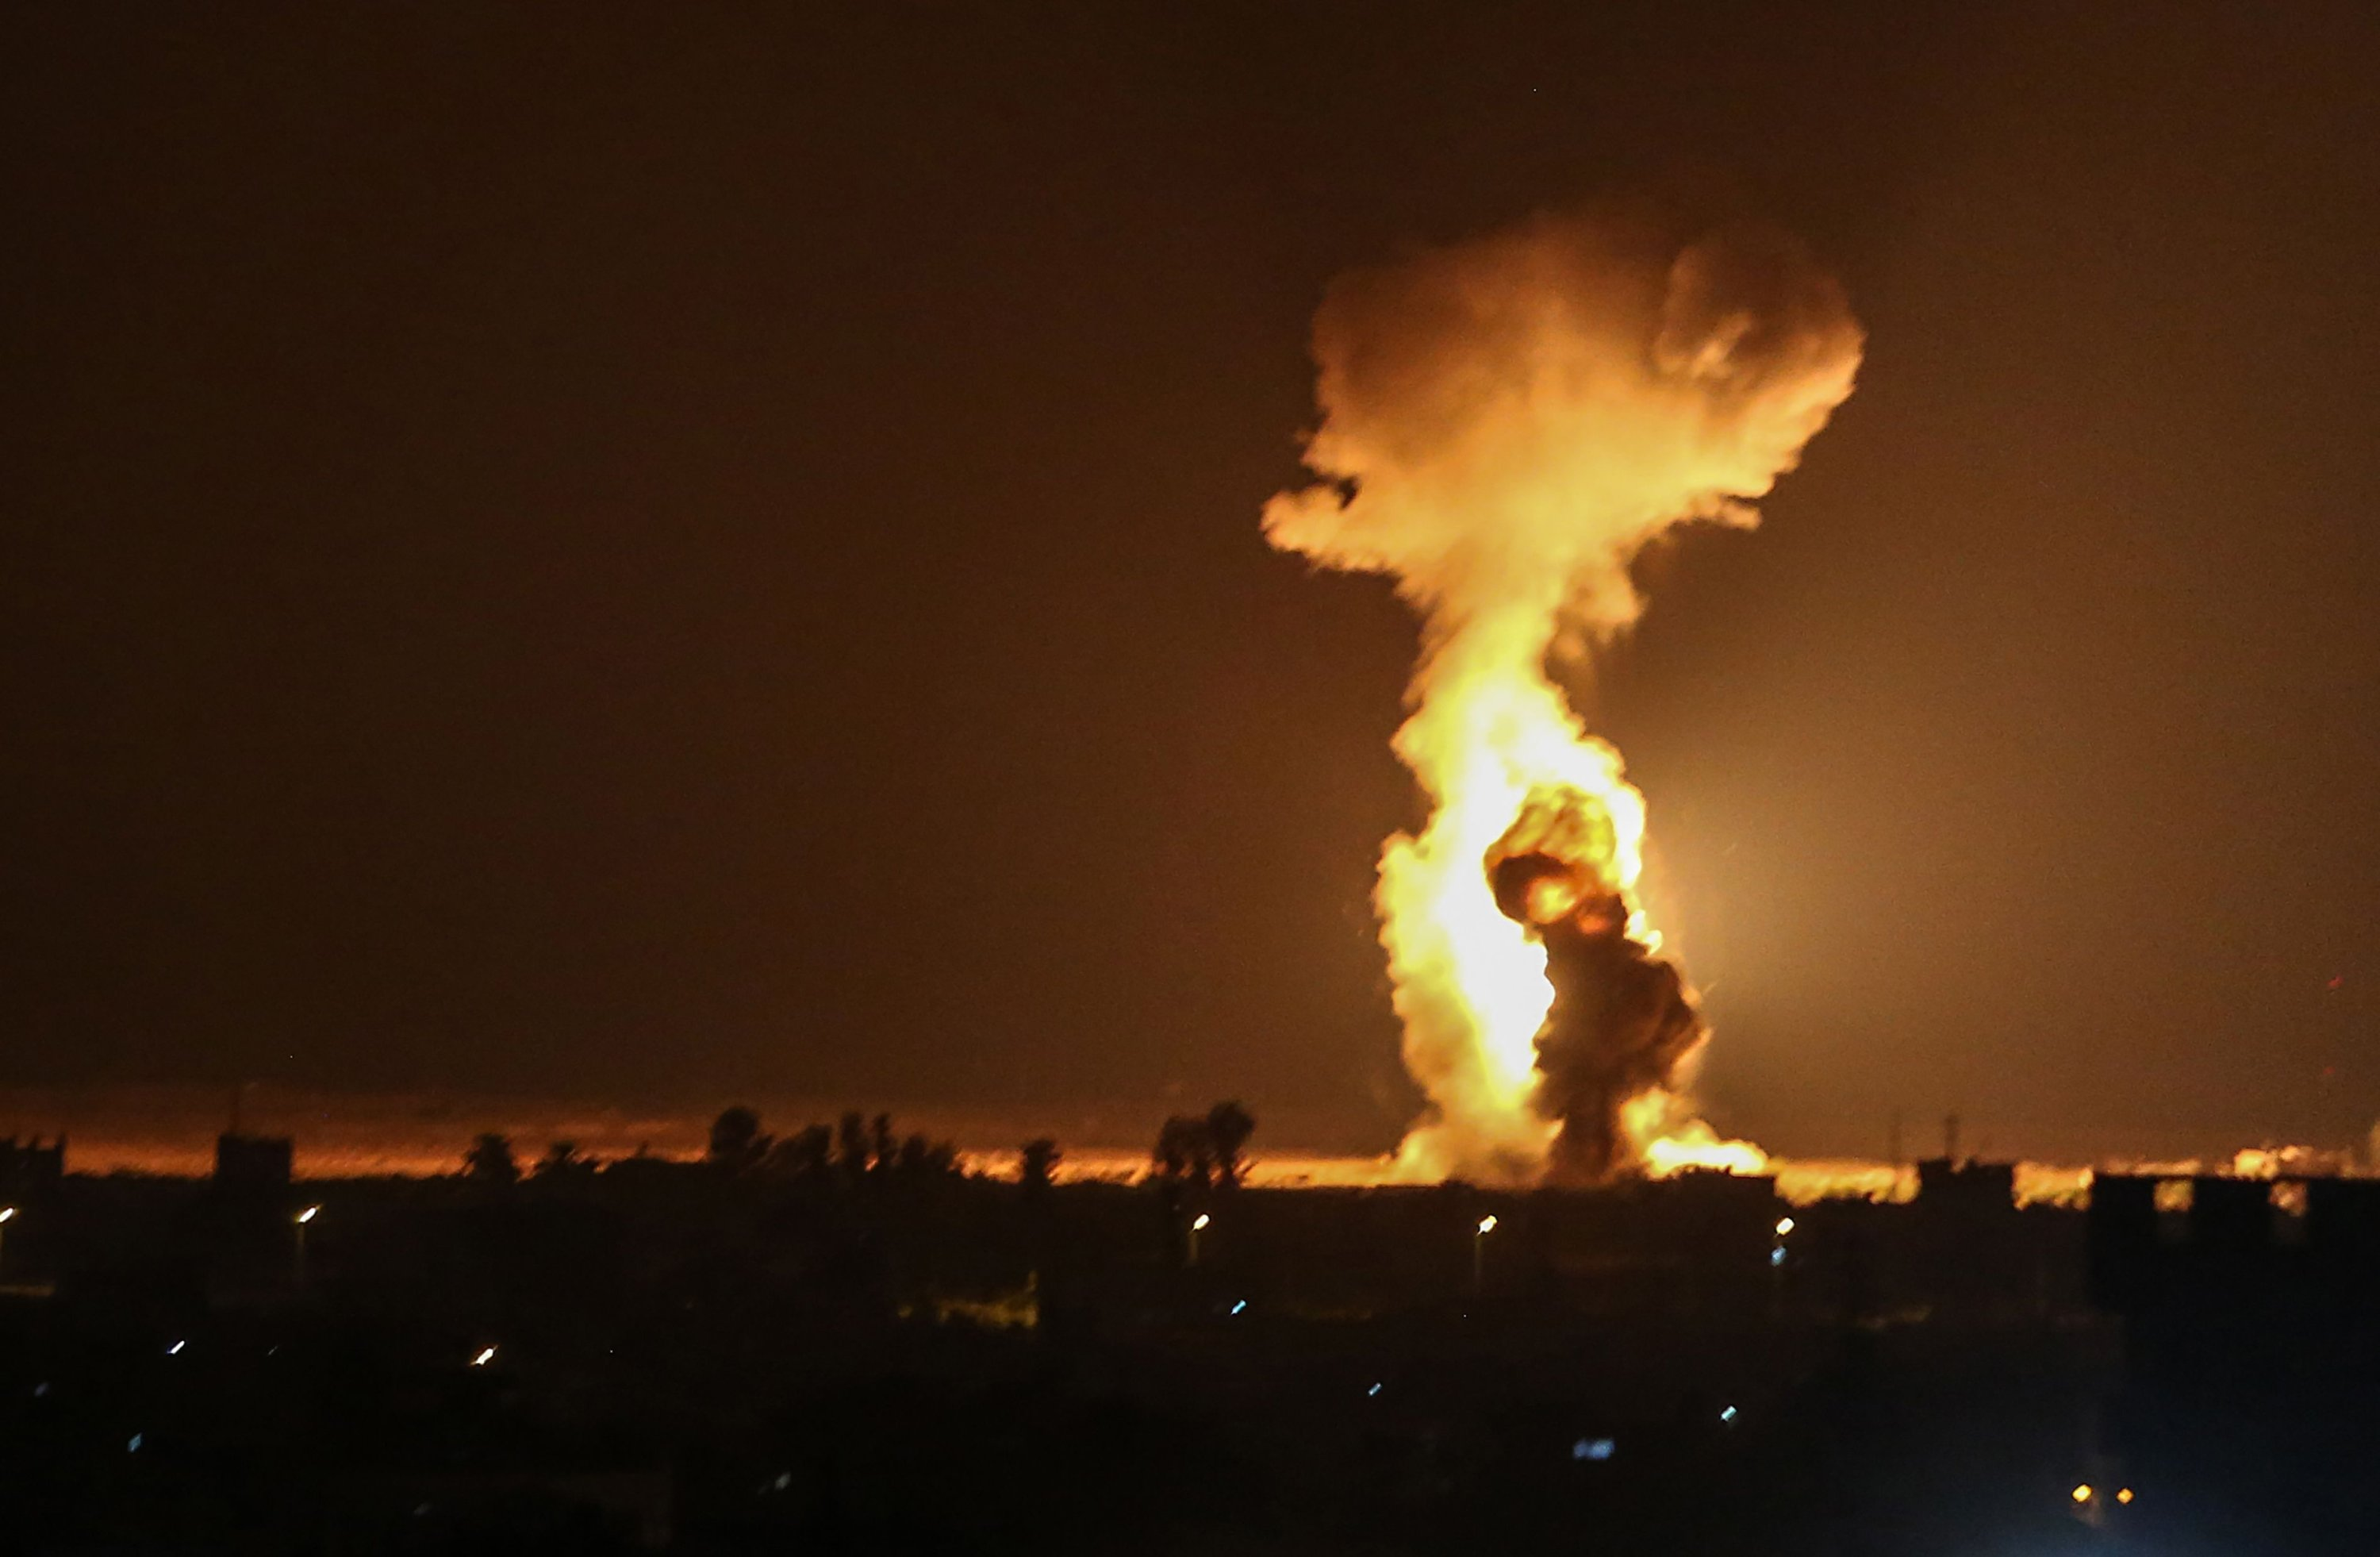 Israel carries out overnight strikes on Hamas positions in Gaza over fire  balloons | Daily Sabah